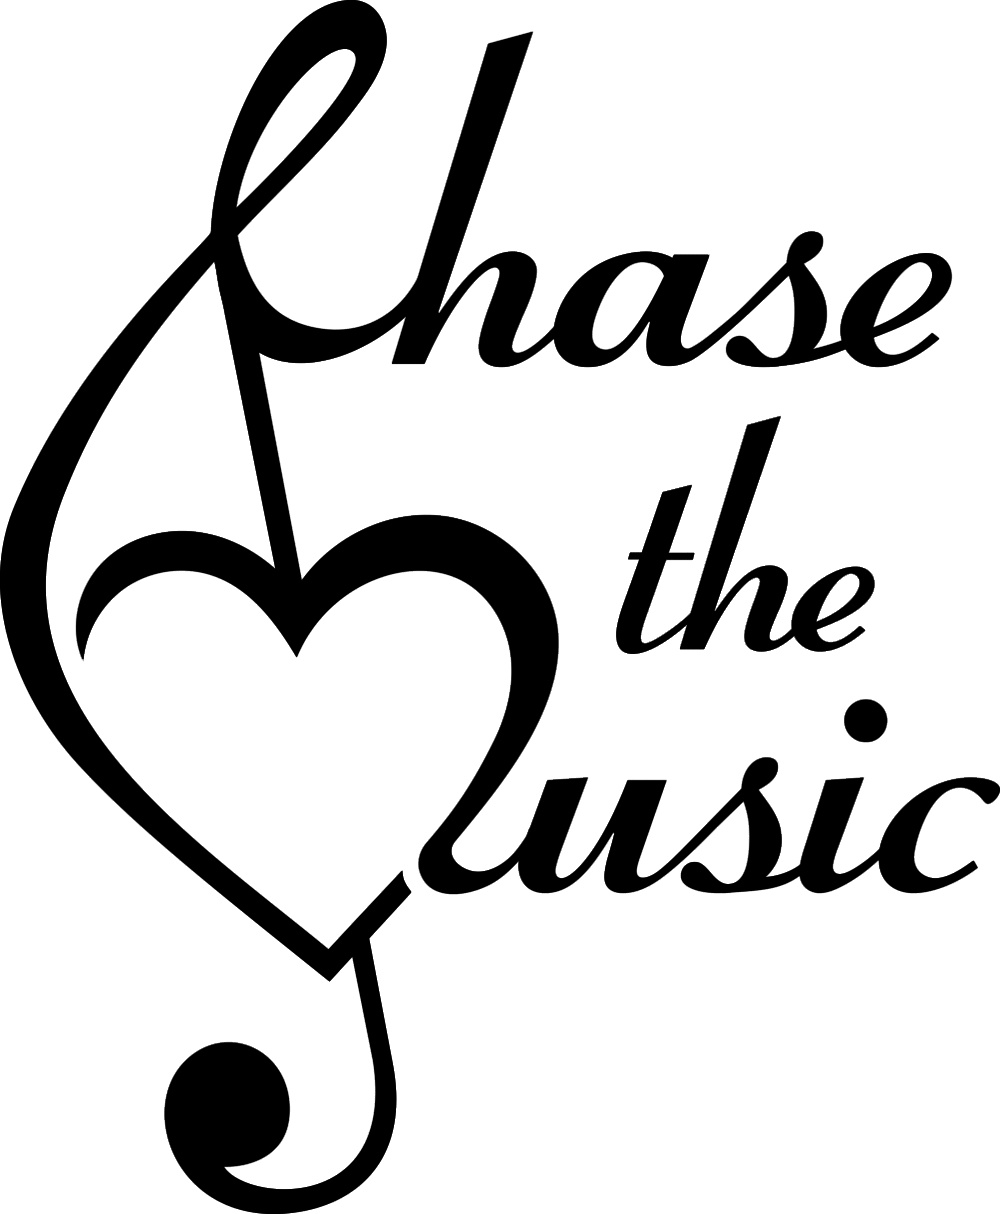 Chase the Music logo